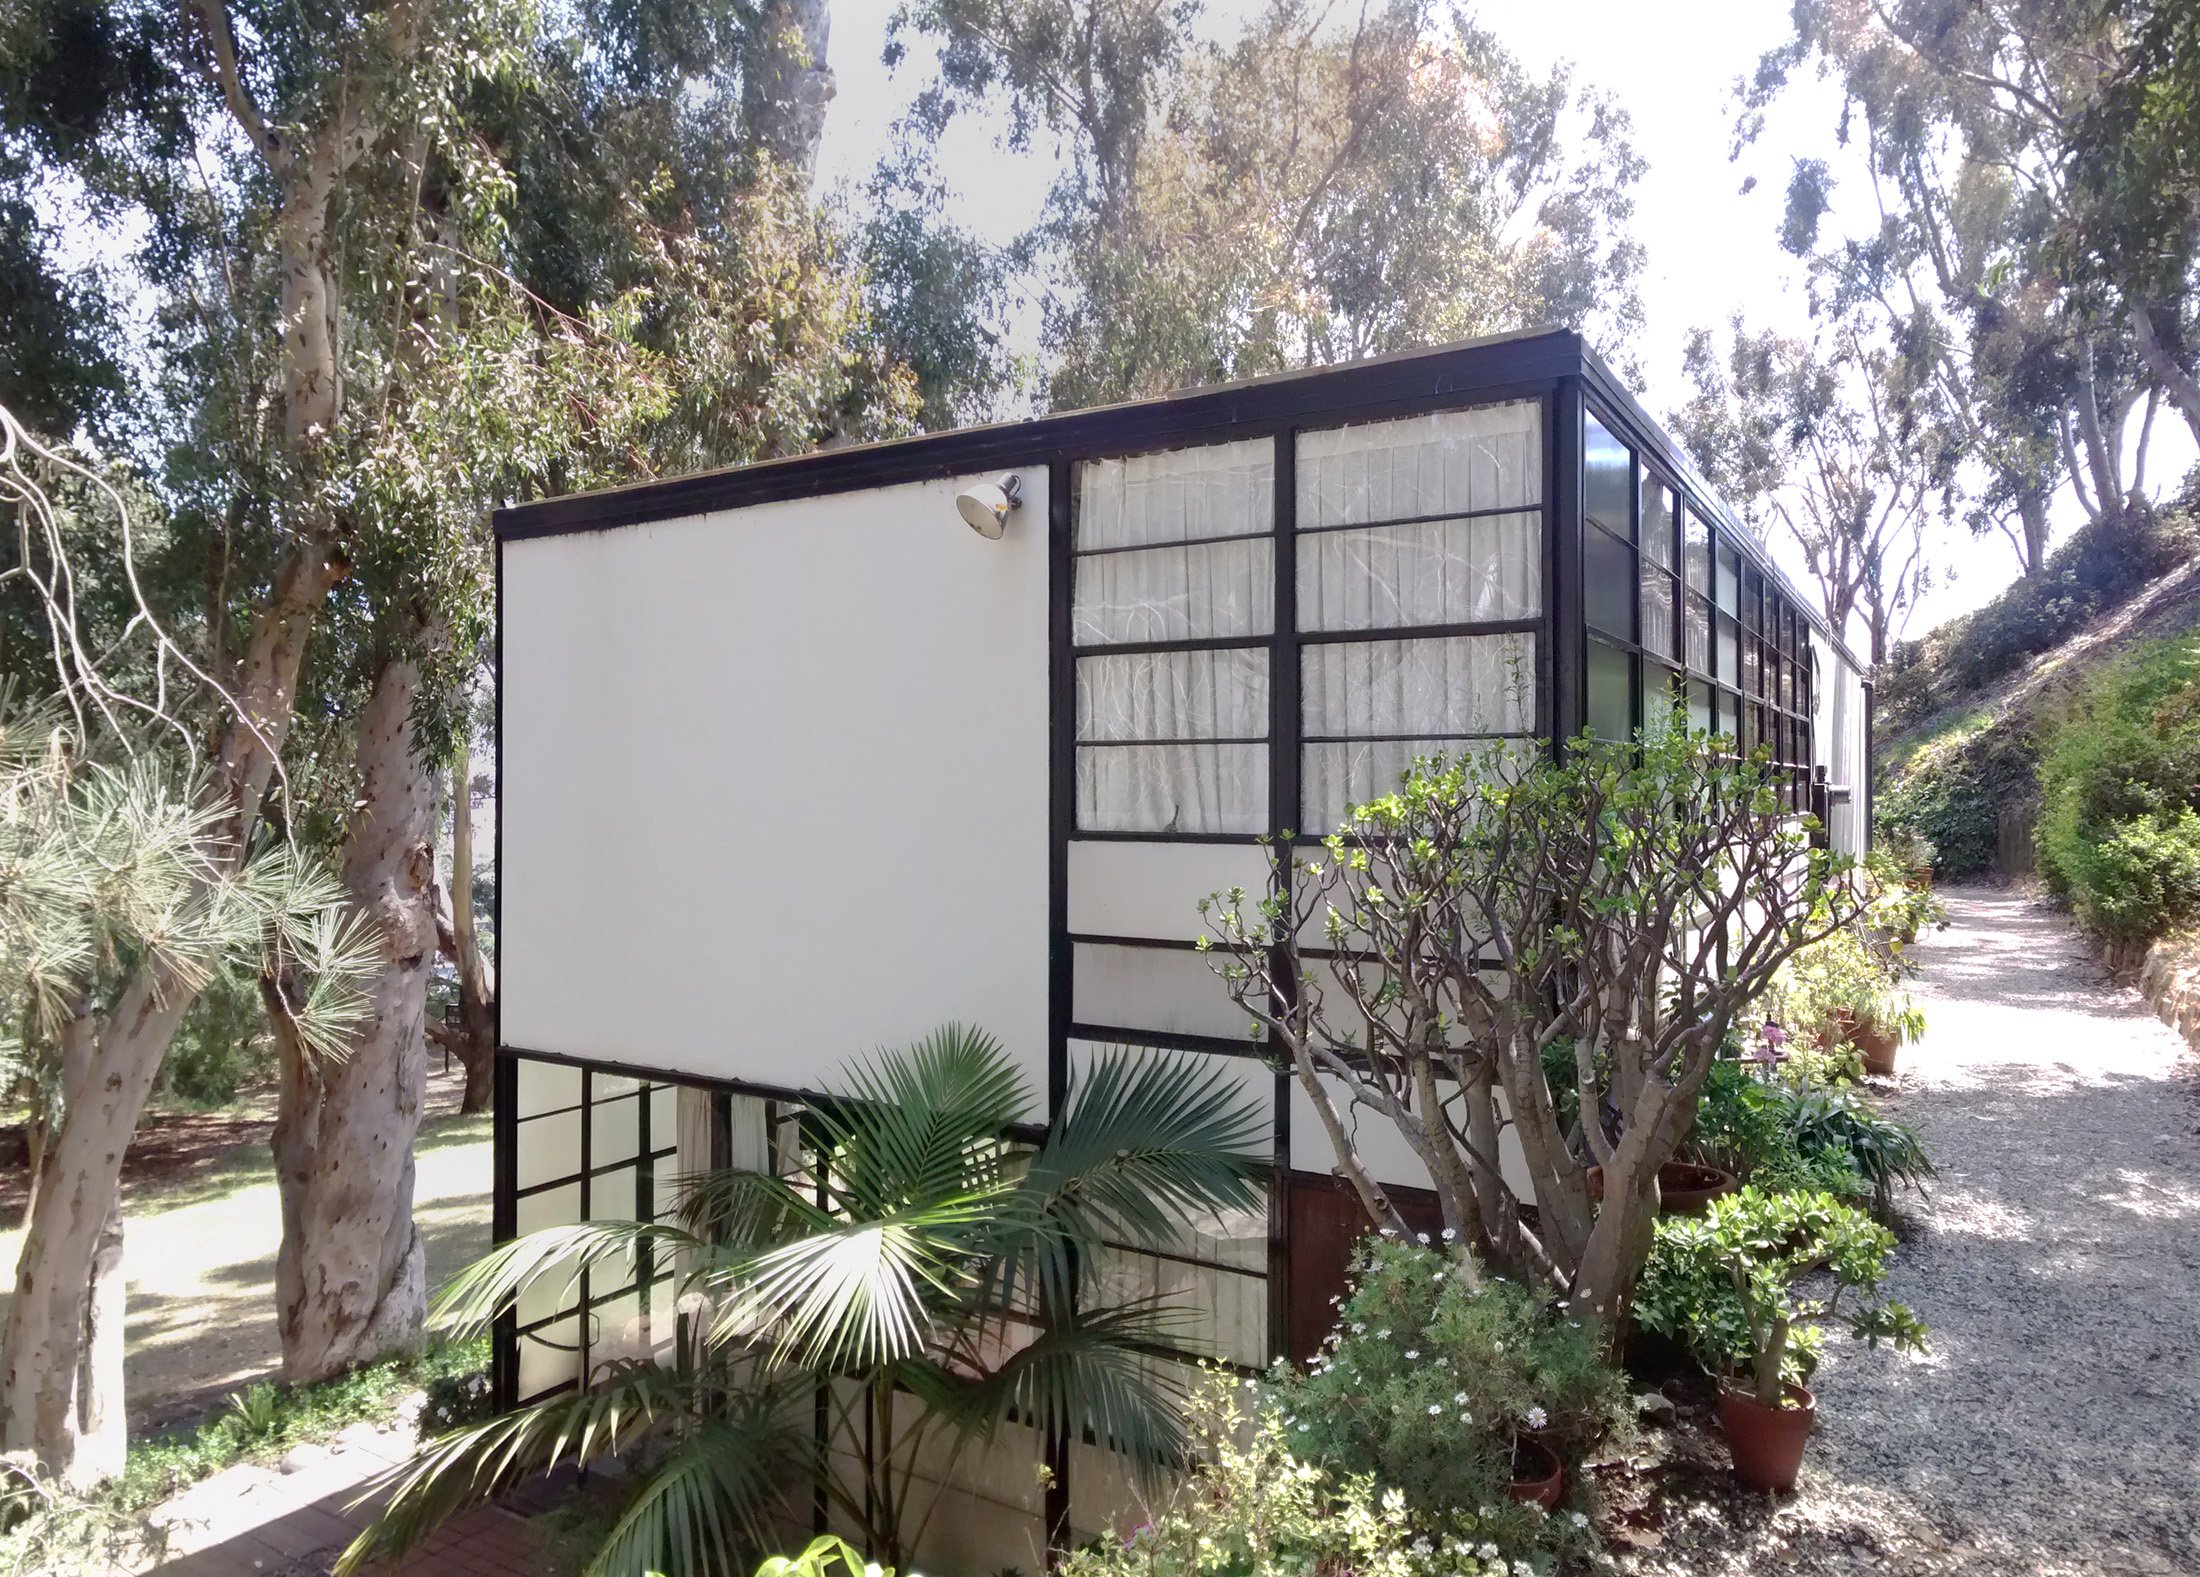 Pacific Palisades  Eames House   Case Study House     Charles and Ray Eames Adroyt